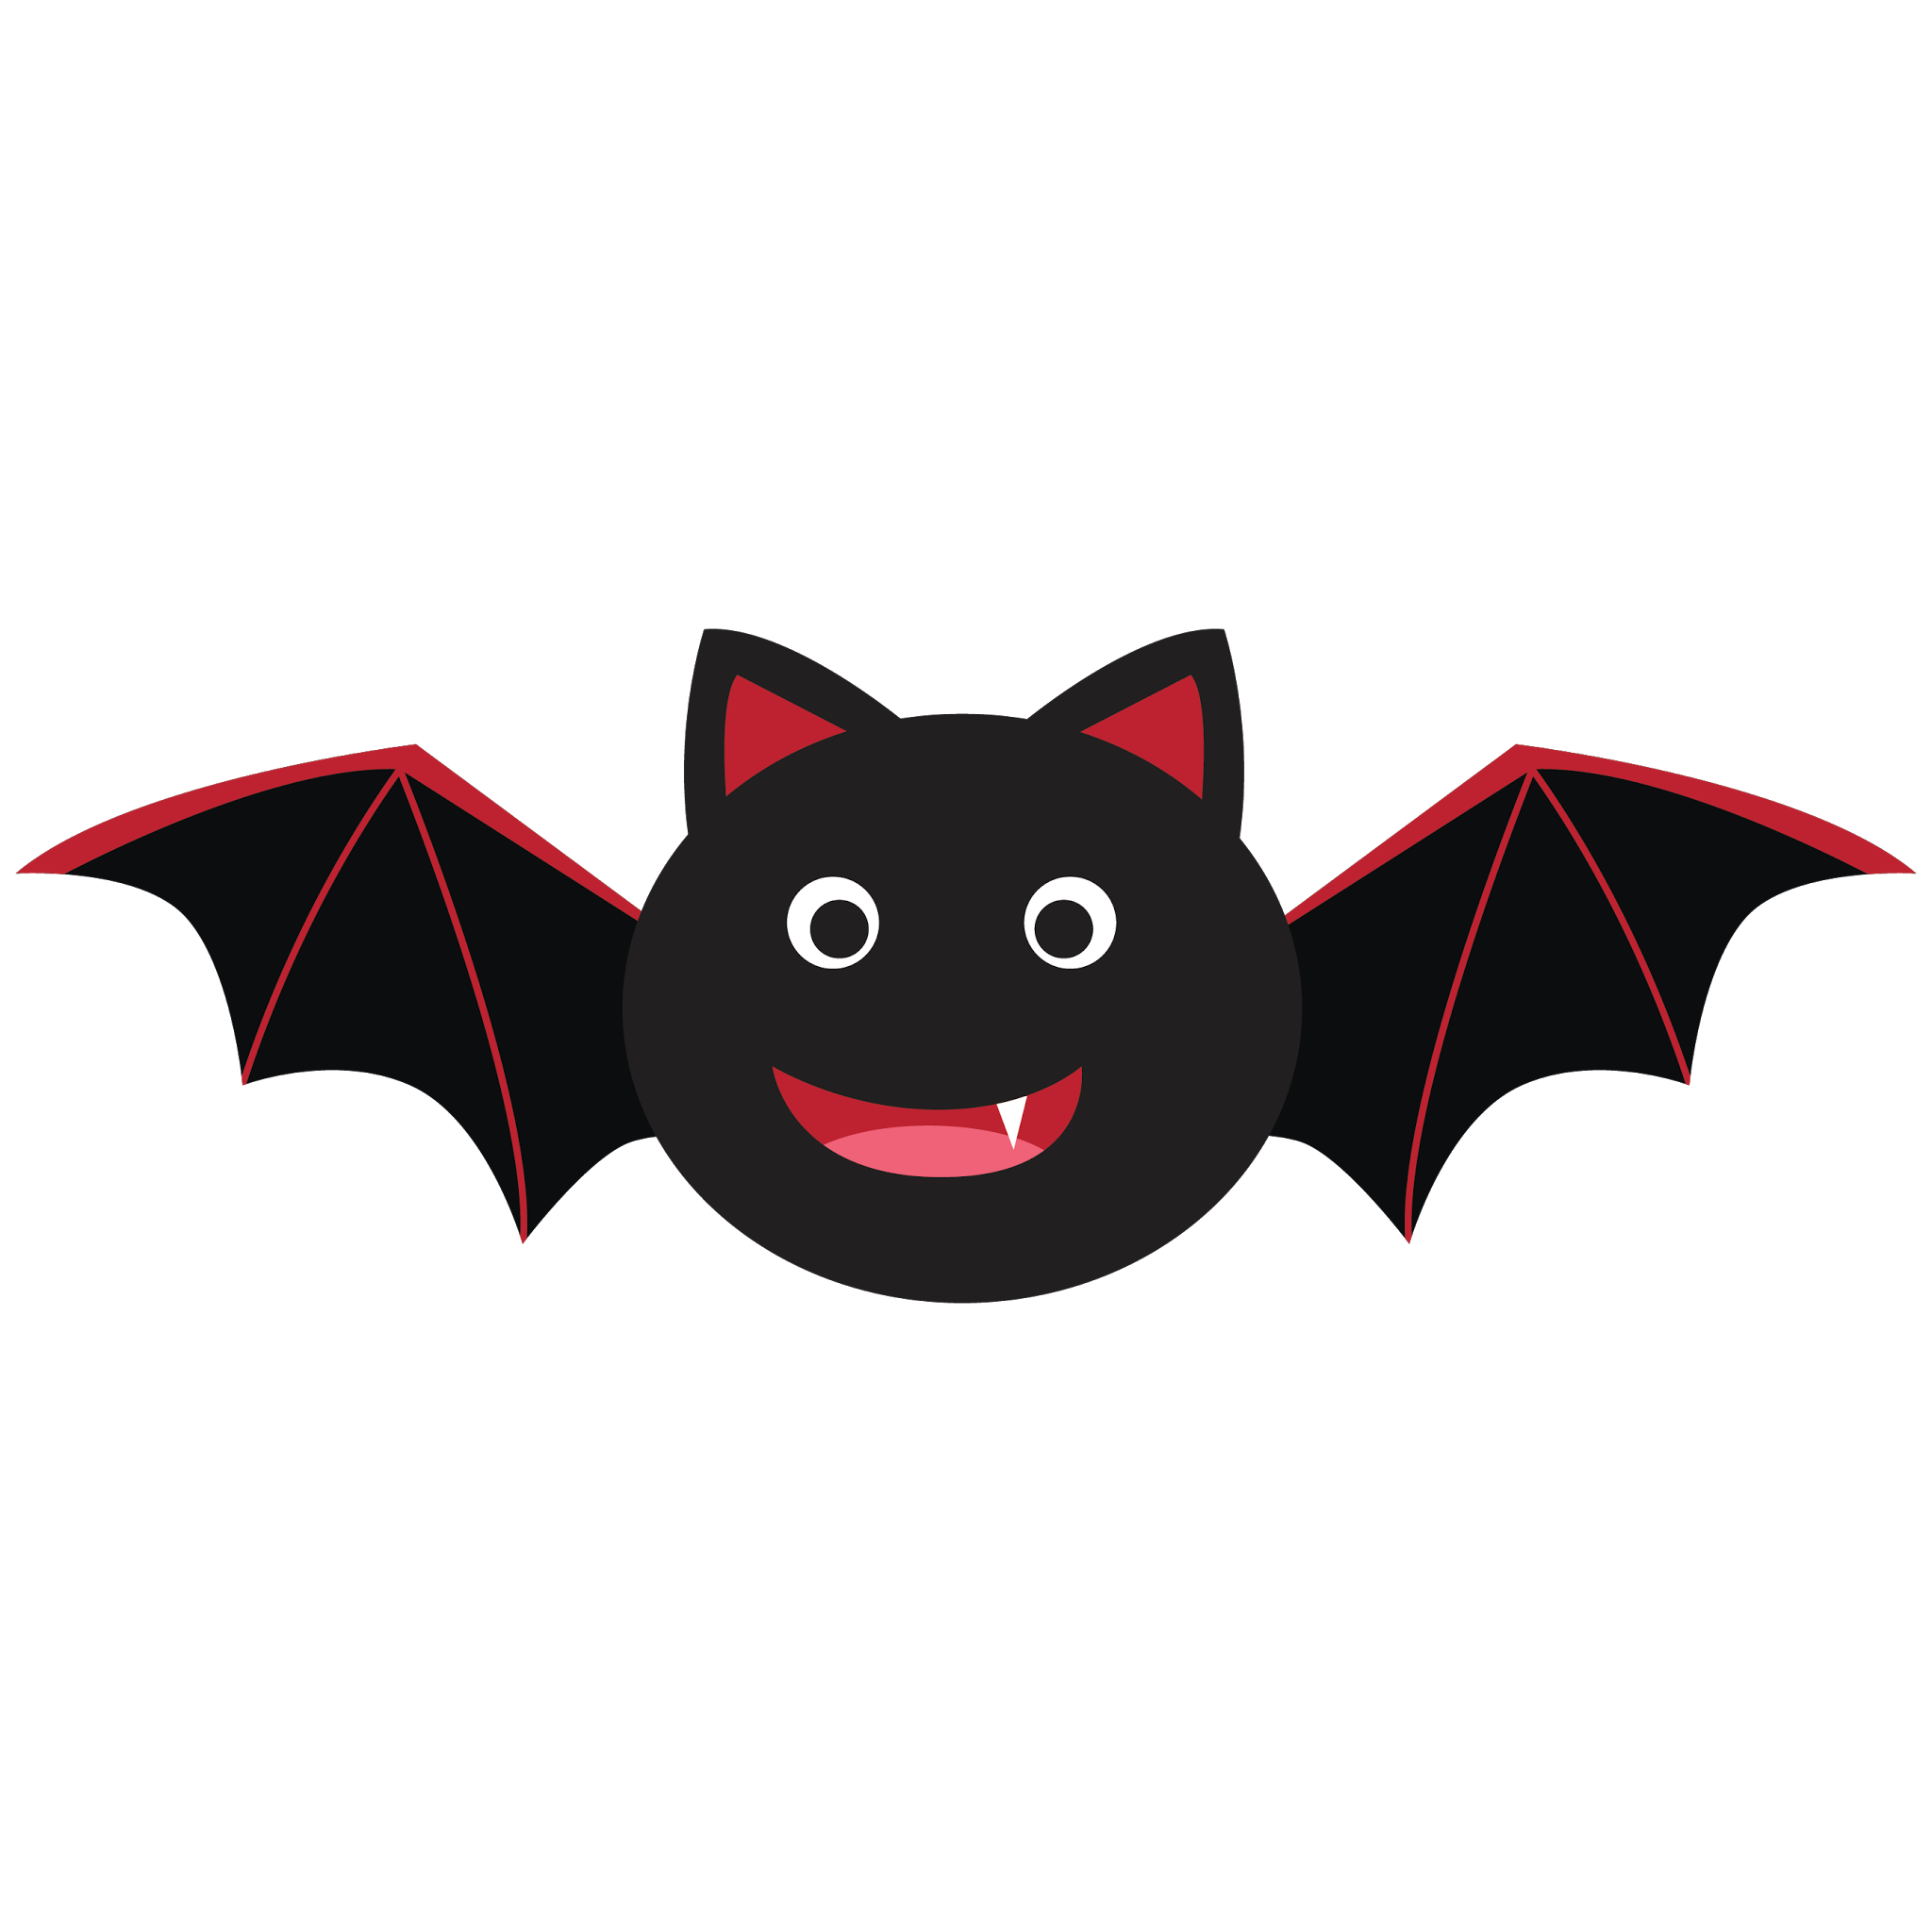 Bat easy. Best clipart clipartion com